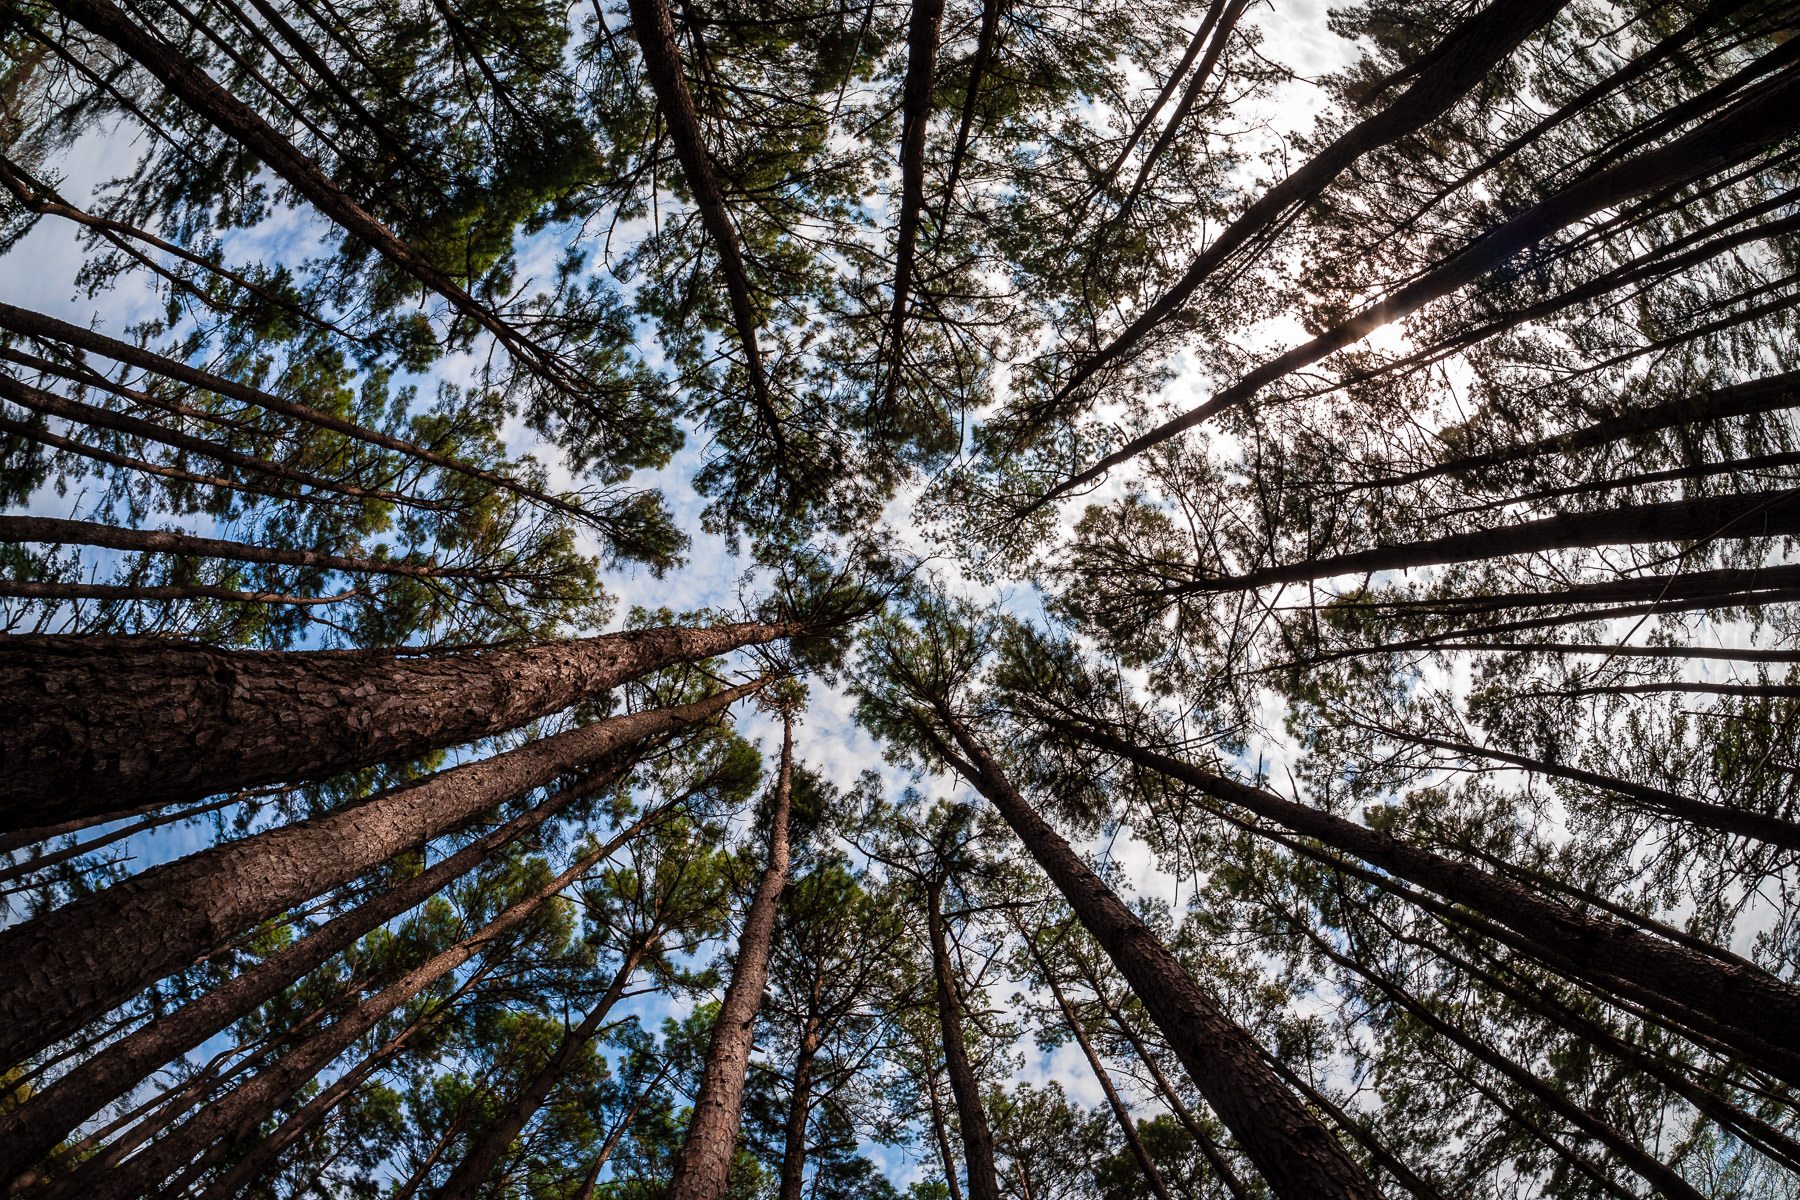 Pine trees reach into the sky at Tyler State Park, Texas.